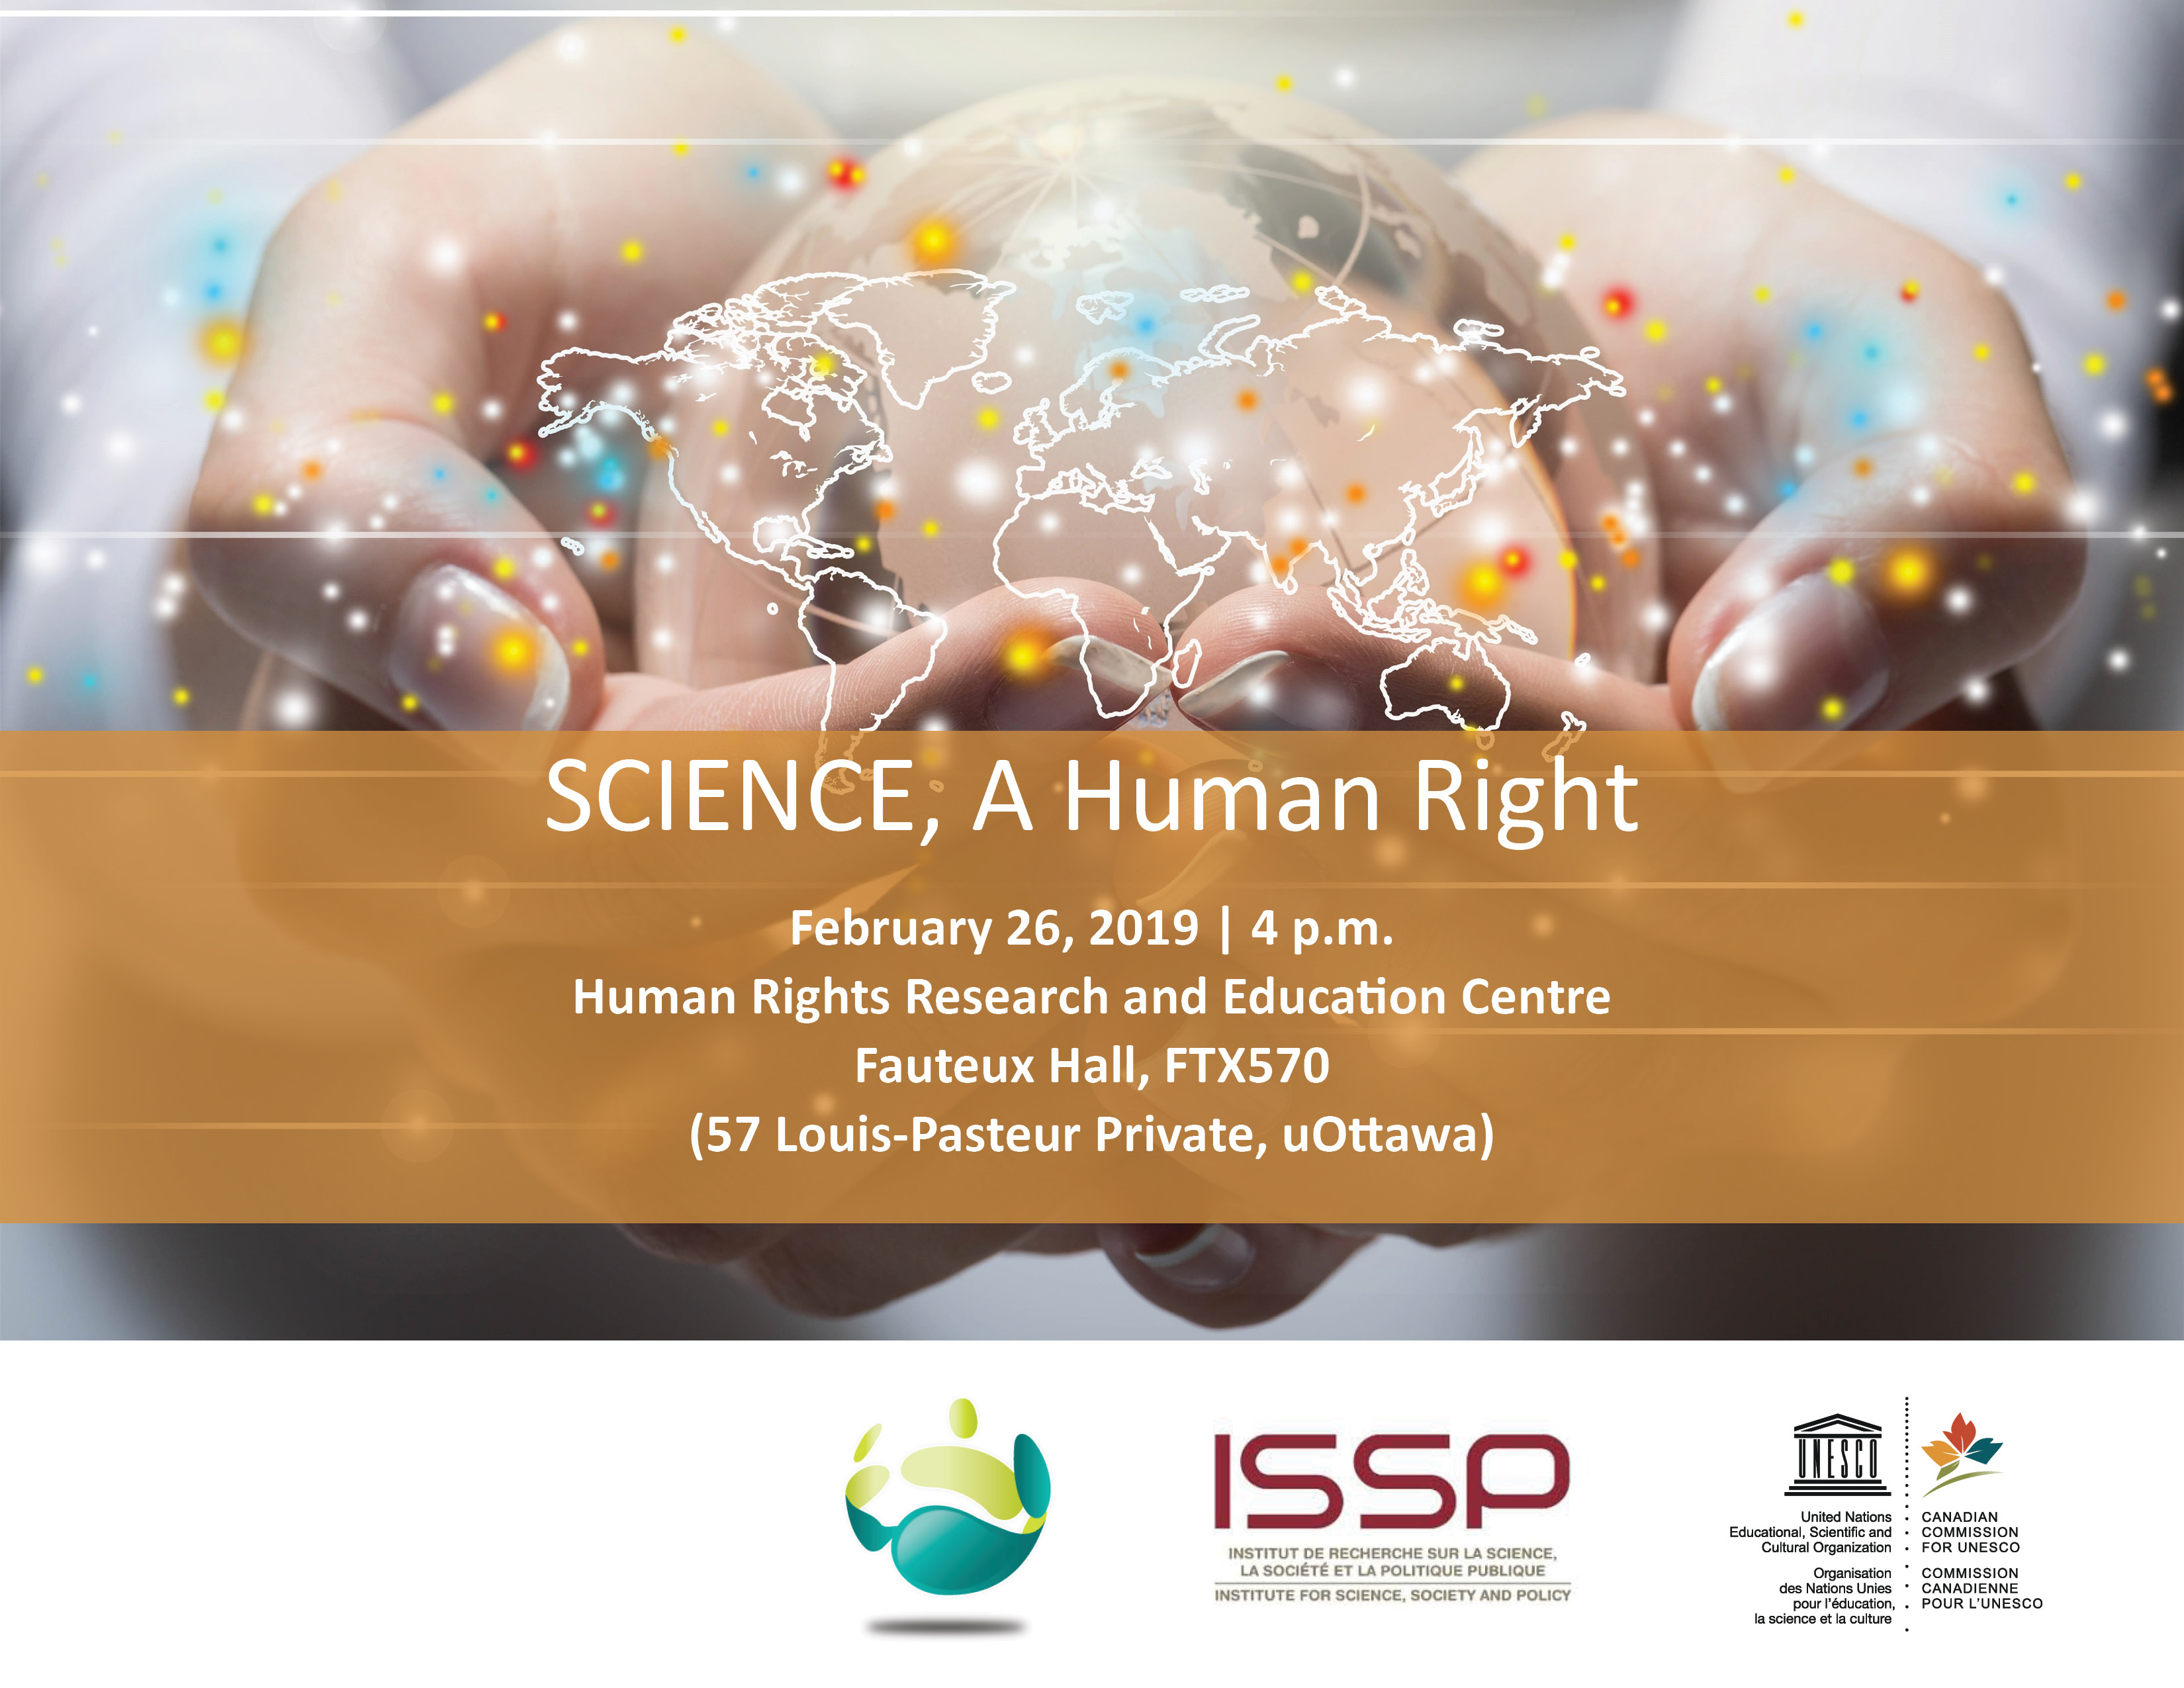 SCIENCE, A Human Right